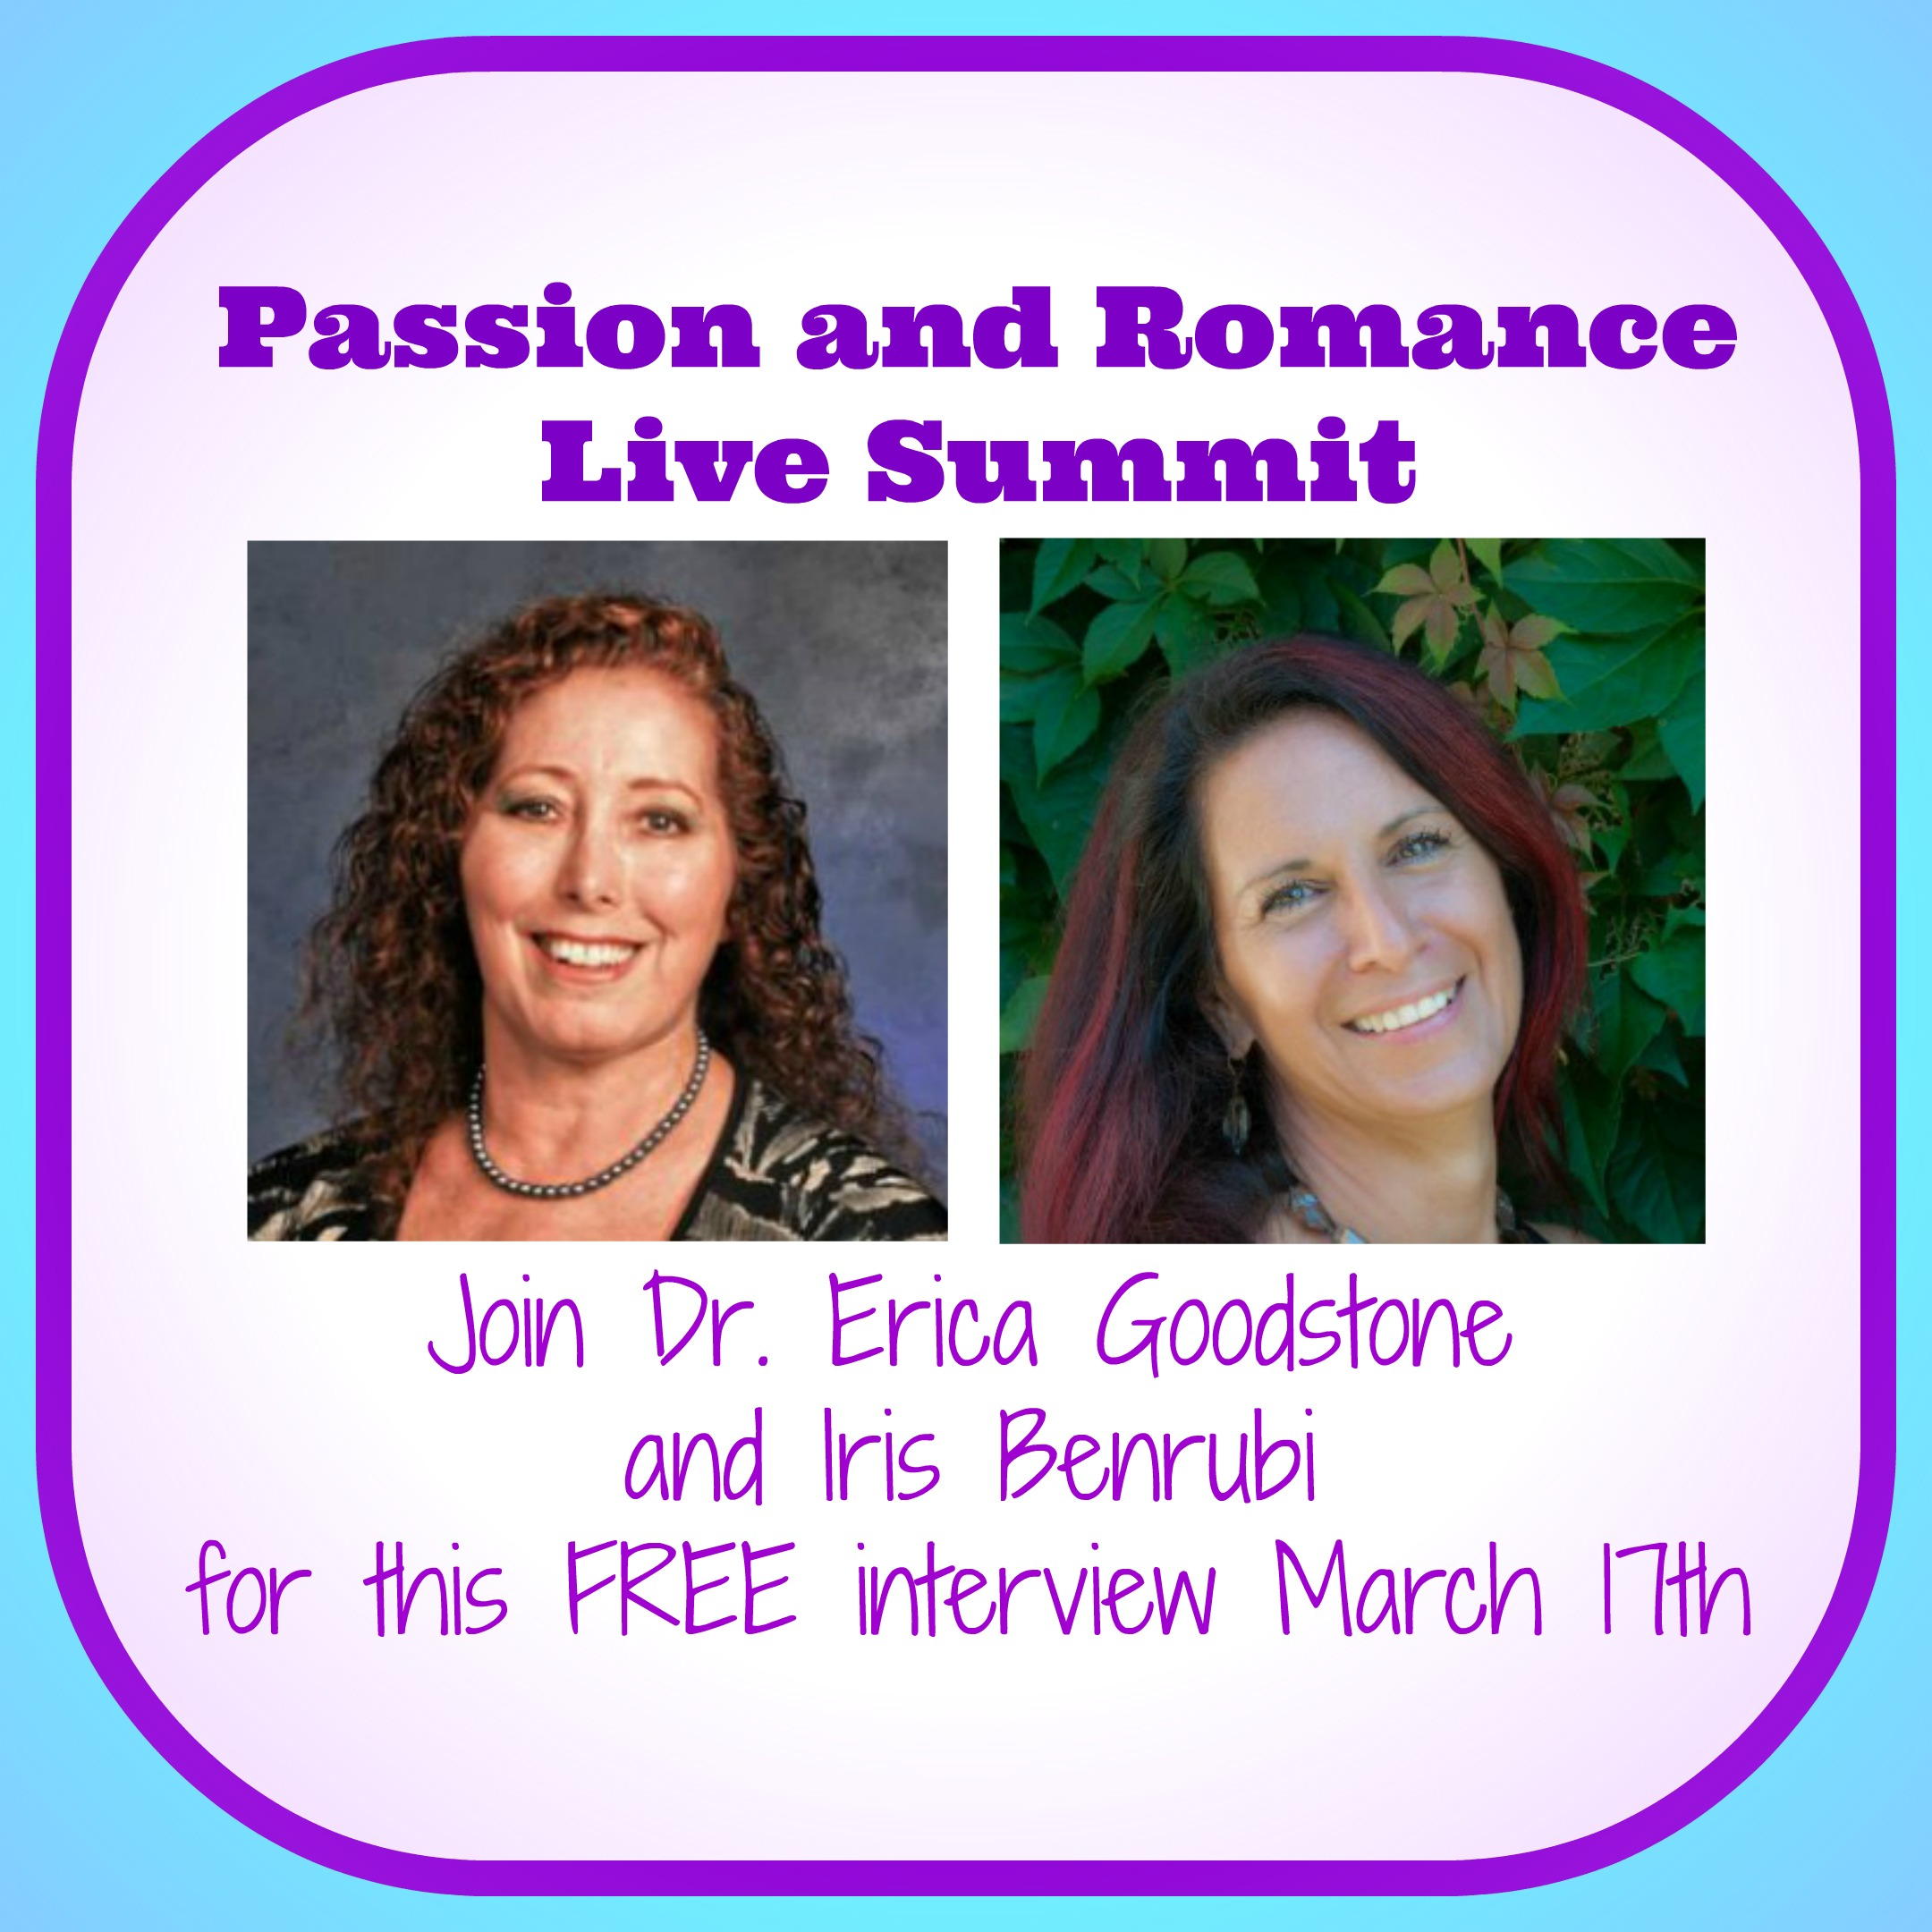 Dr. Erica Interviewed at the Passion and Romance Summit